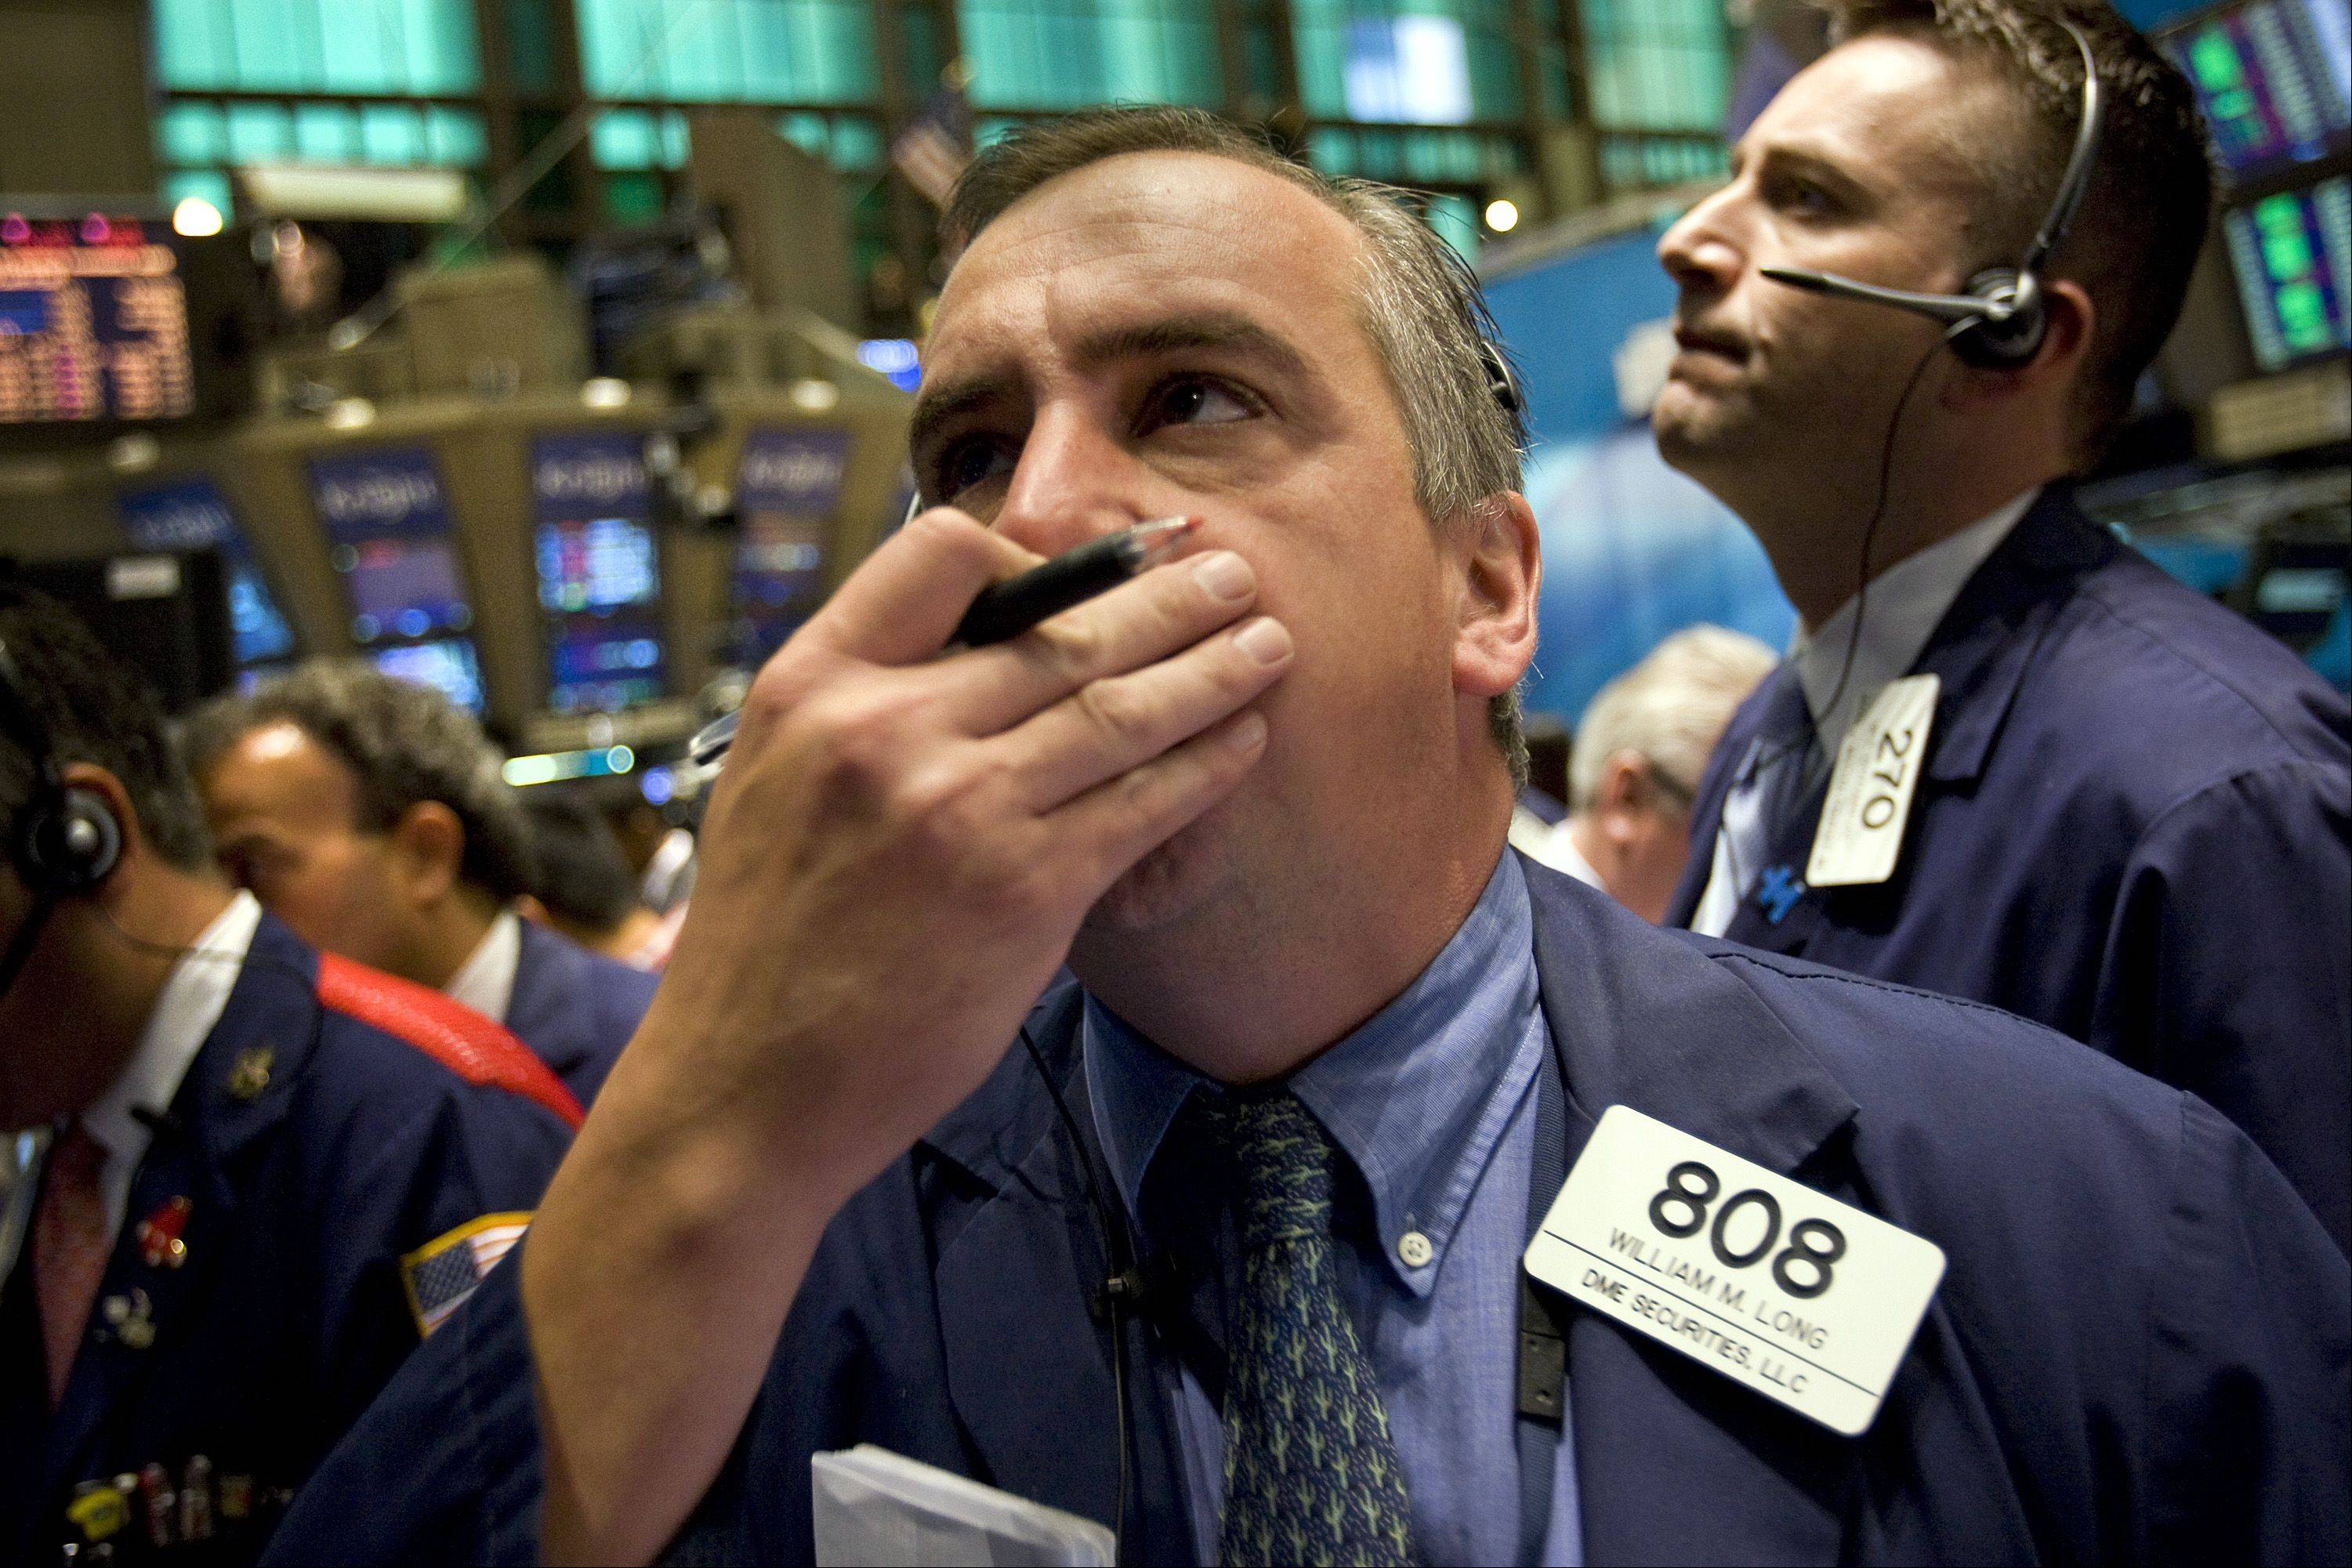 Traders work on the floor of the New York Stock Exchange (NYSE) in New York, U.S., on Monday, Aug. 8, 2011. U.S. stock futures retreated, following the biggest weekly drop in the Standard & Poor�s 500 Index since 2008, amid concern that a downgrade of the nation�s credit rating by S&P may worsen an economic slowdown.